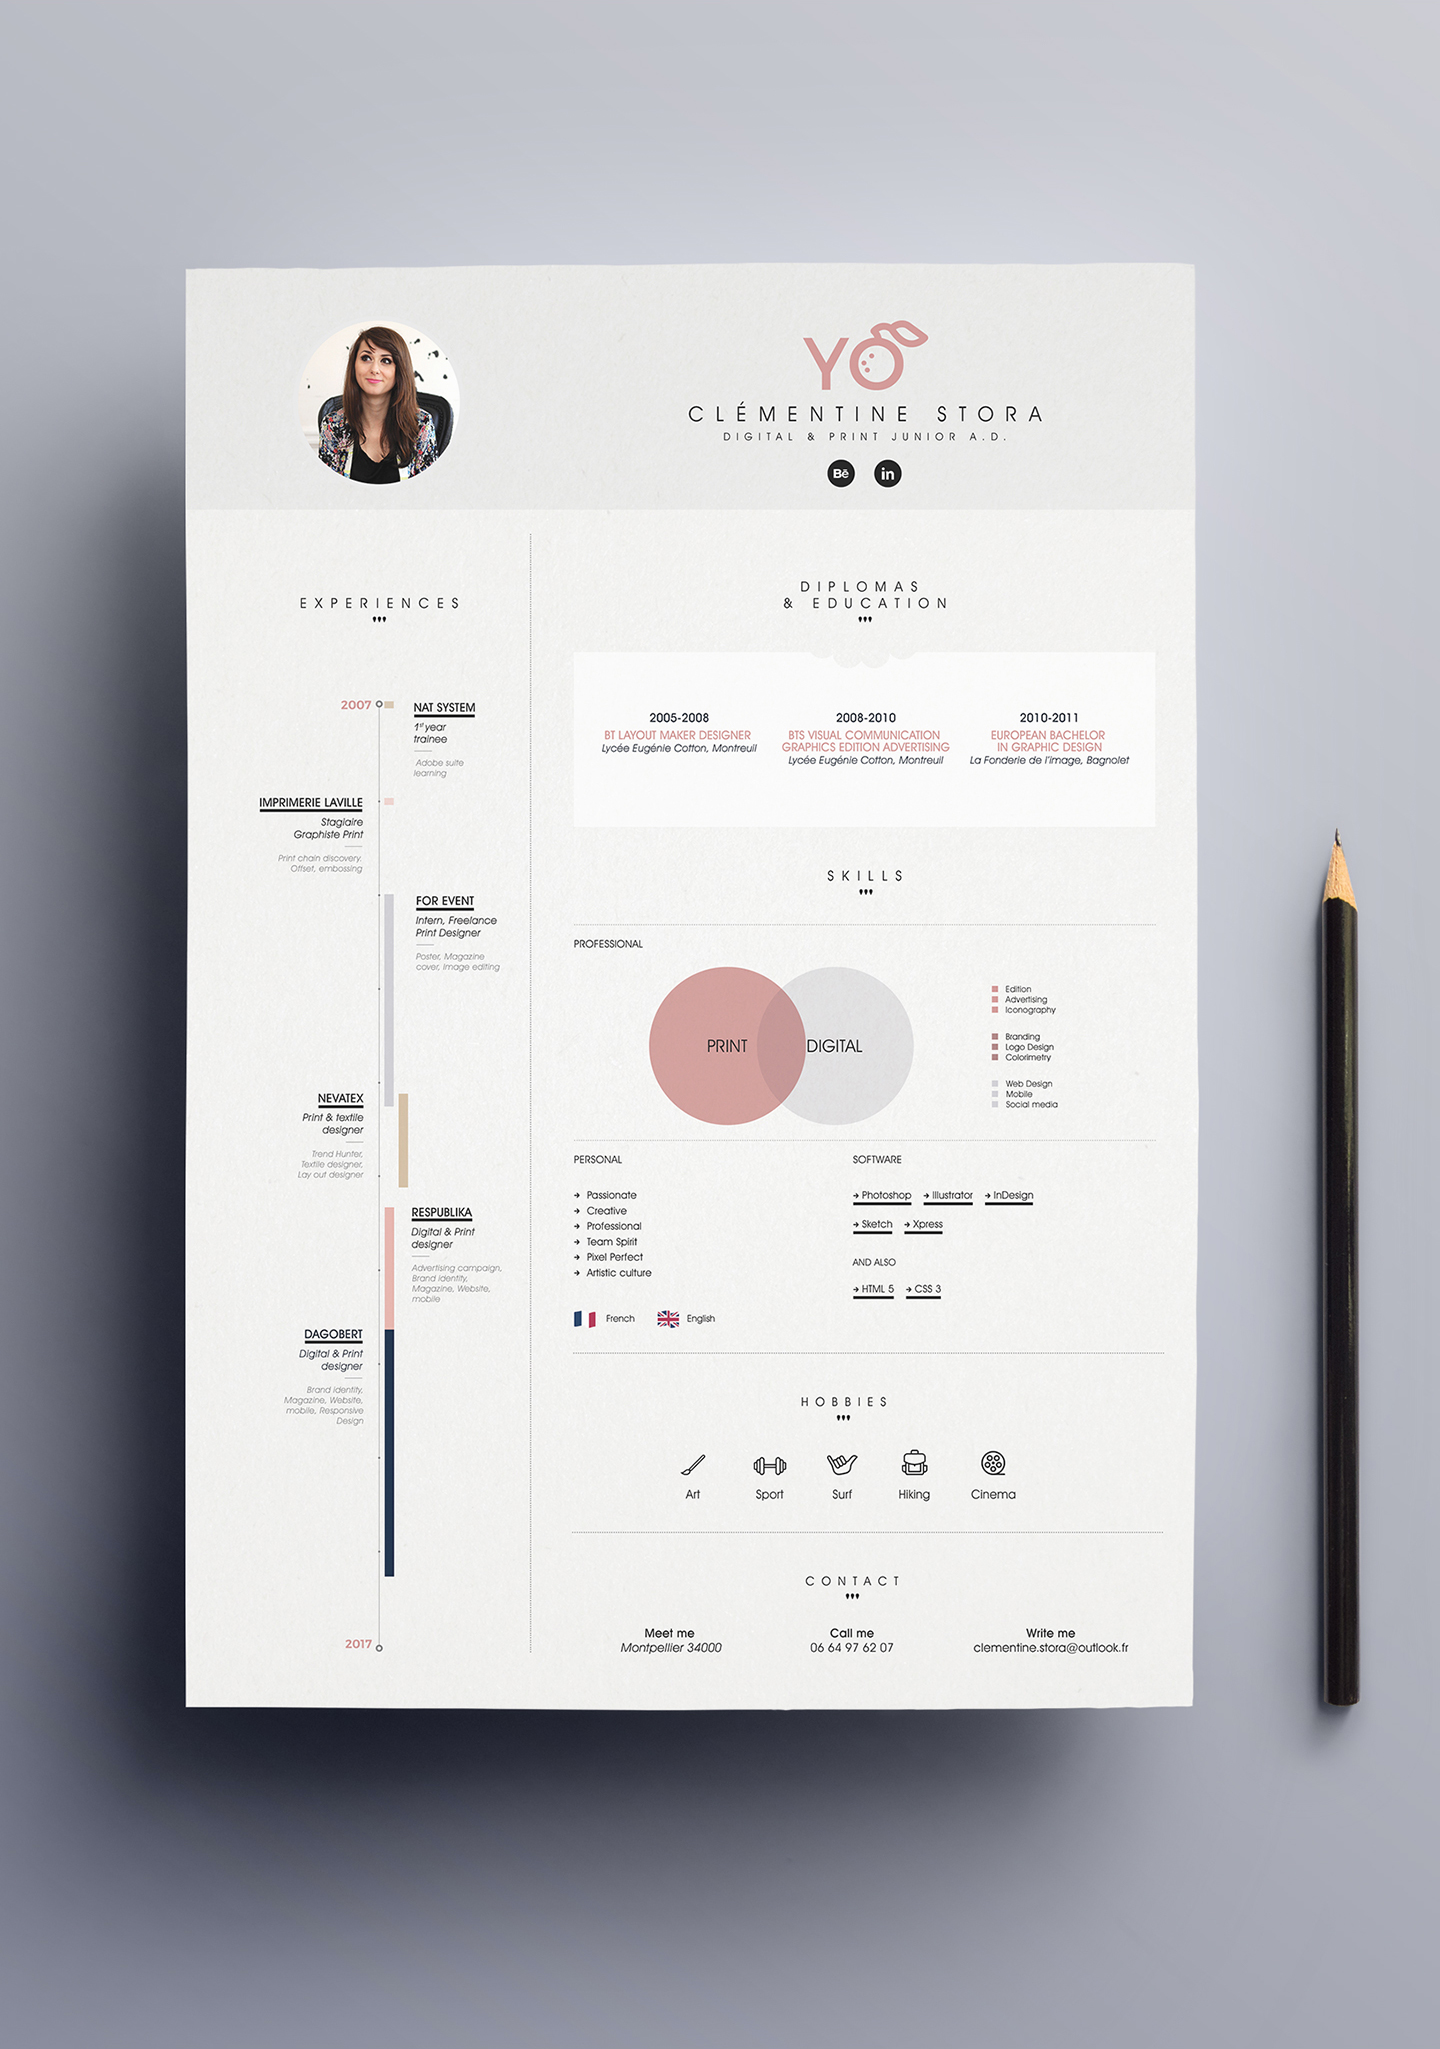 15  timeline infographic design examples  u0026 ideas